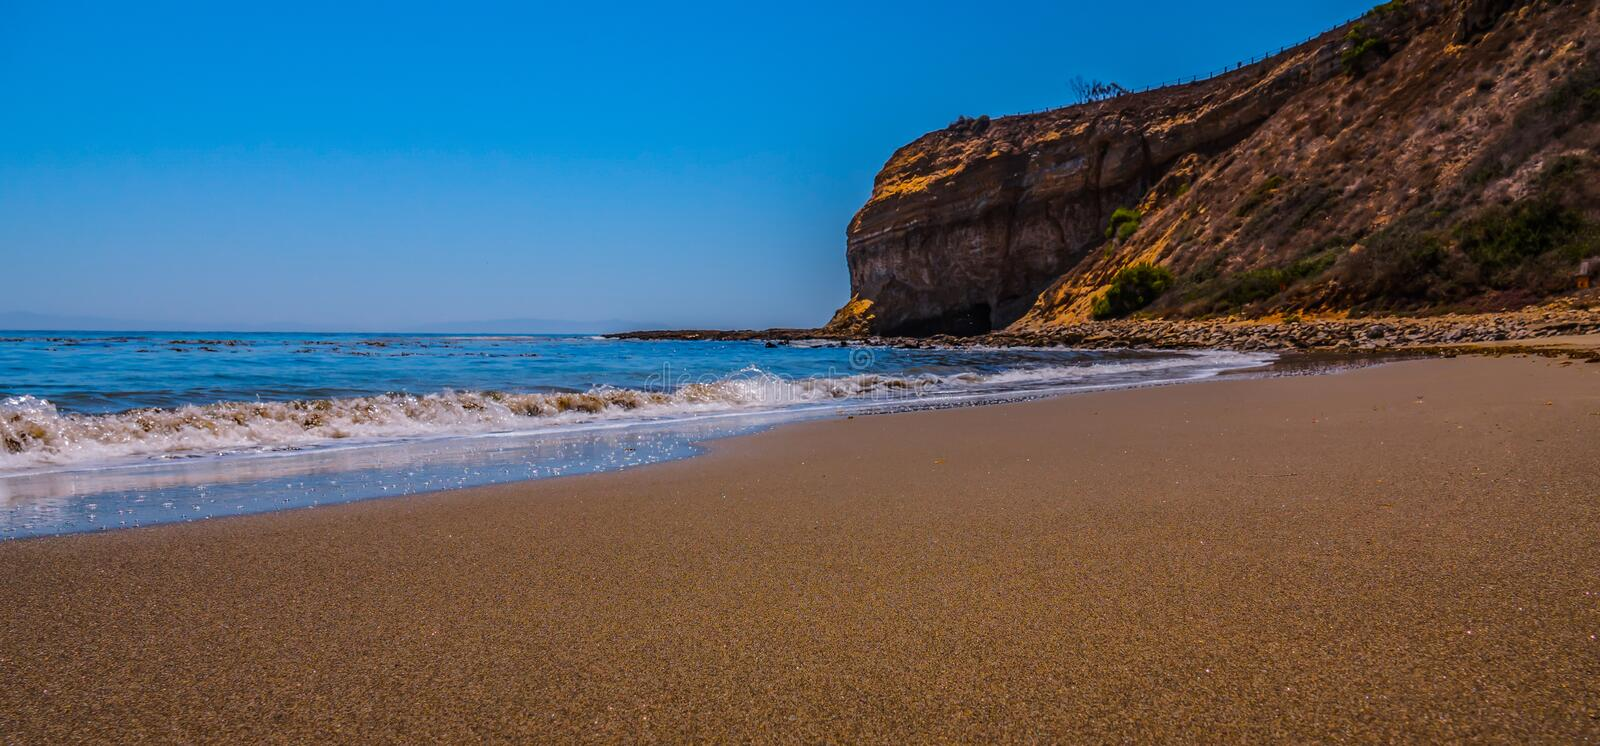 Coastal and beach scenes taken throughout Southern California. Coastal ocean scenes of beaches at various elevations, ranging from Palos Verdes, Hermosa Beach stock image